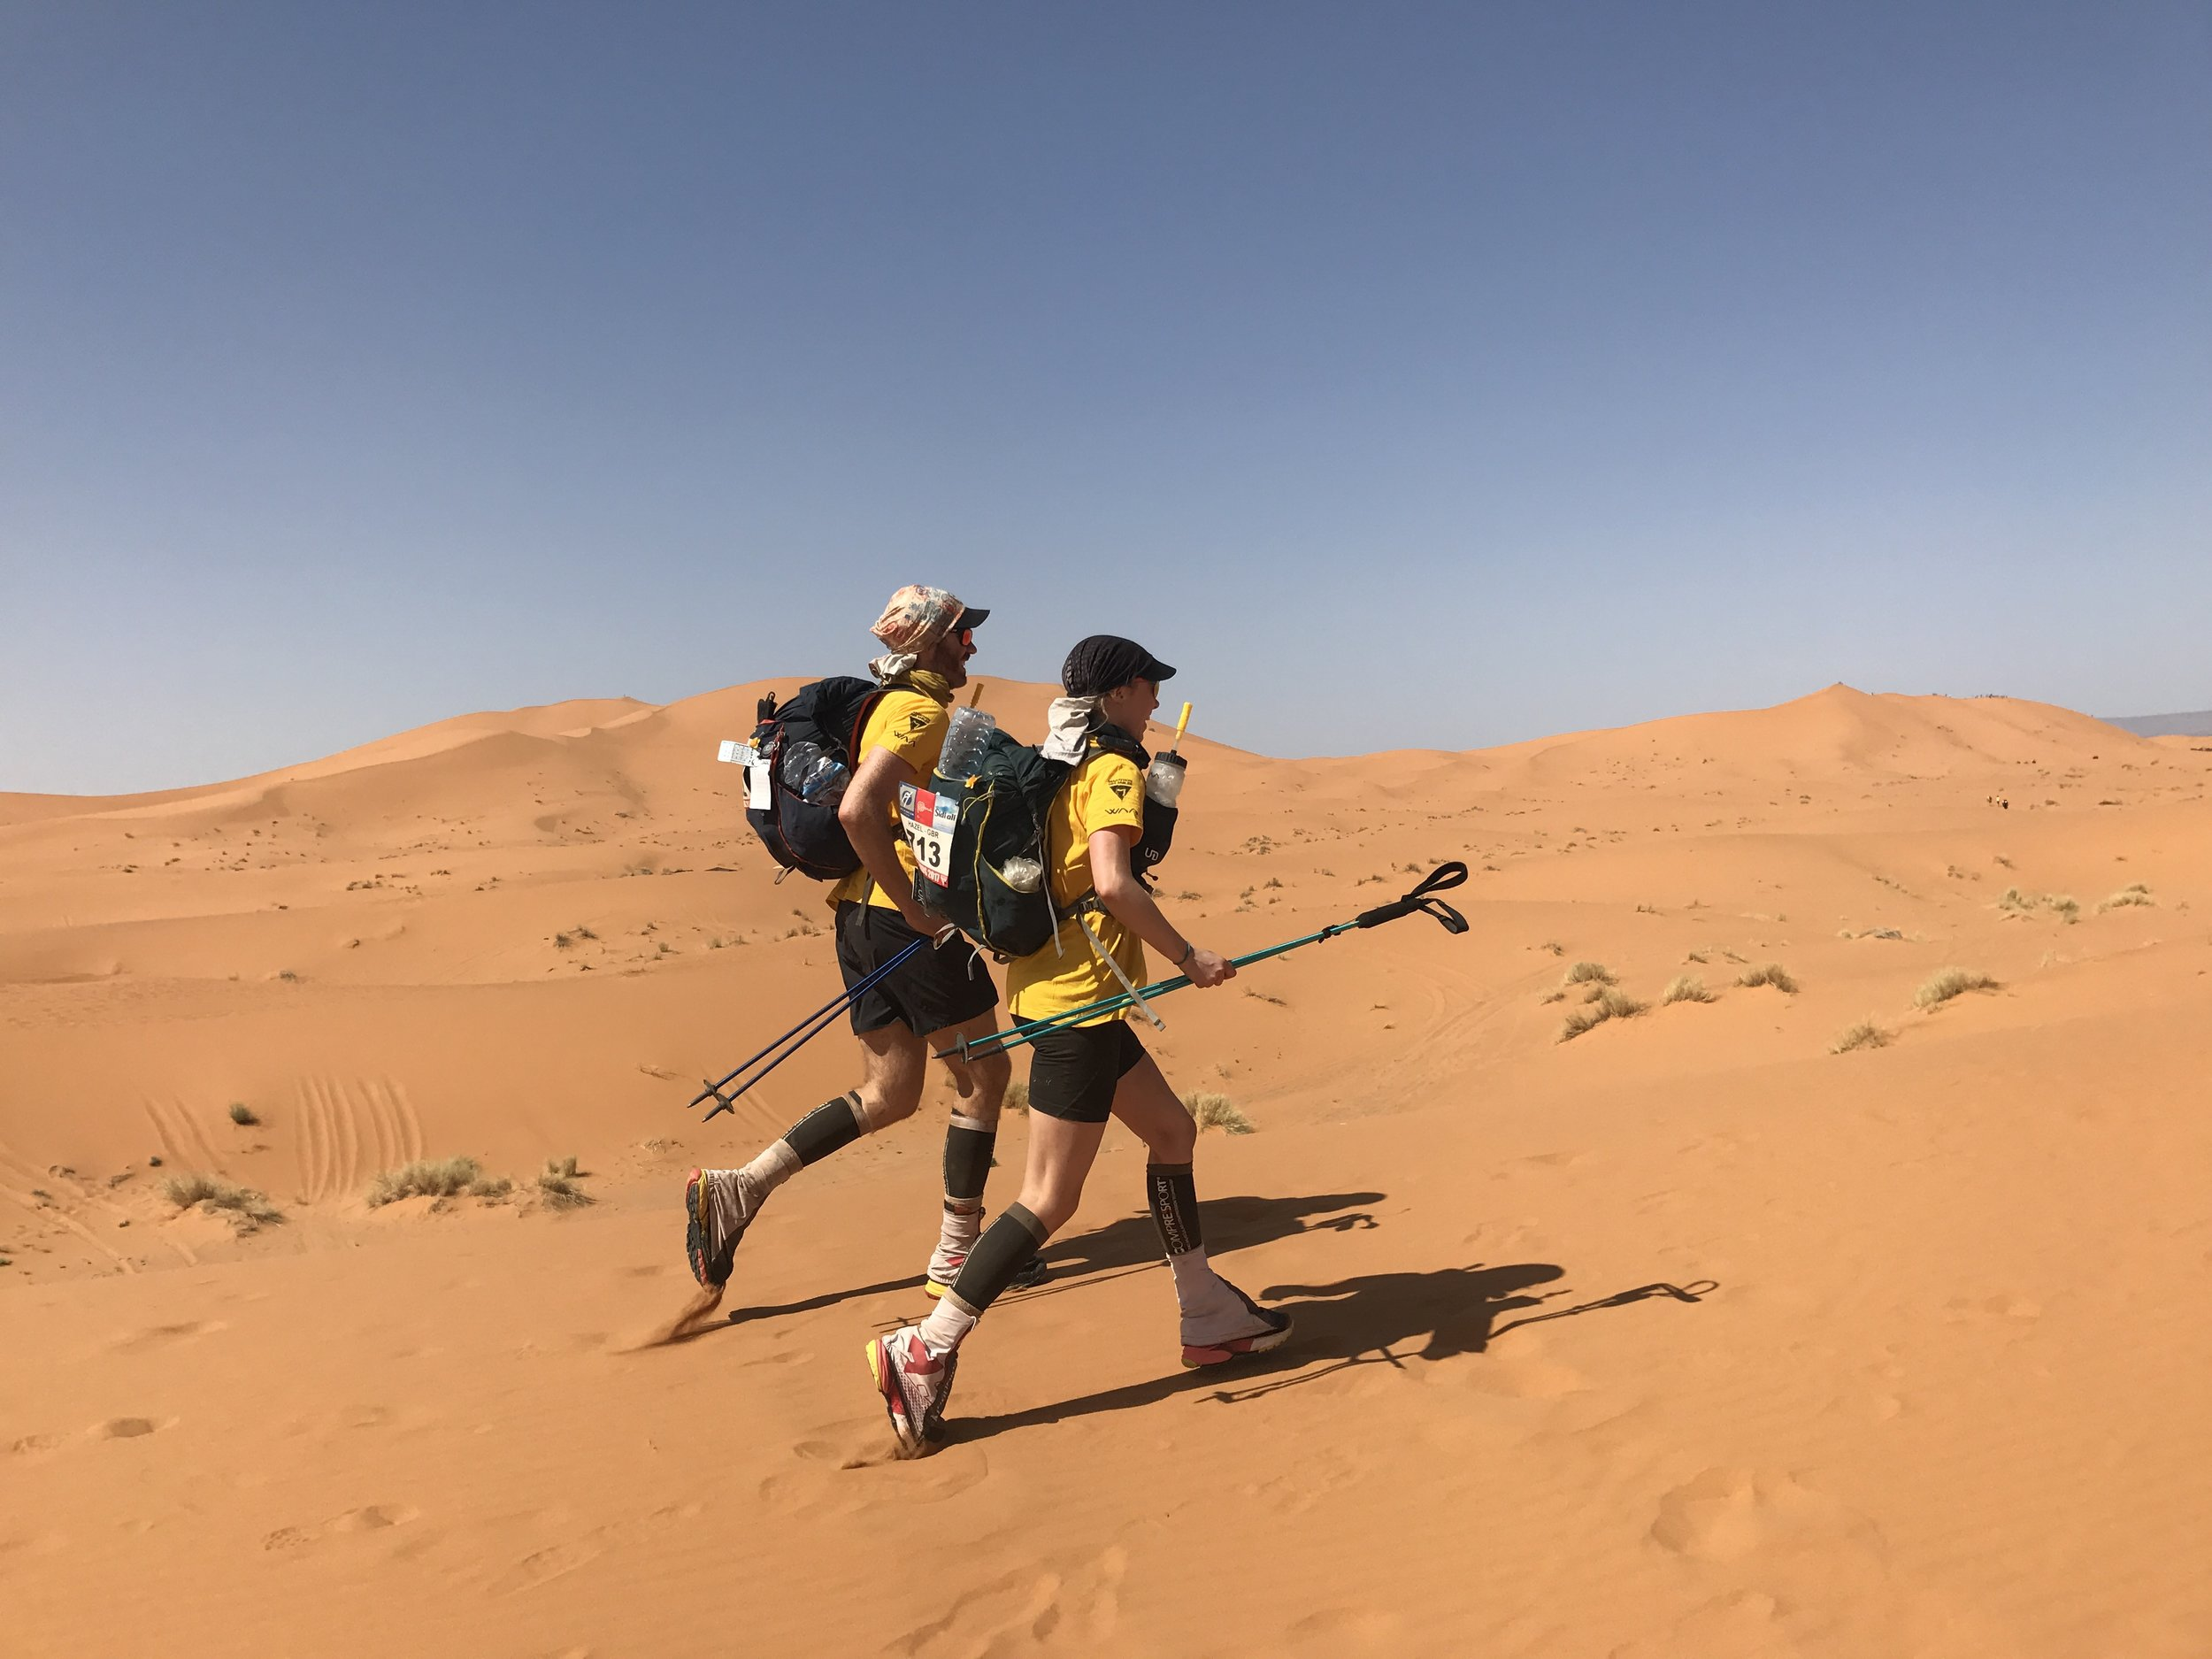 Marathon des Sables  - In 2017, Luke and Hazel took on 'the toughest footrace on the planet - the 156 mile (250km) multi-stage Marathon des Sables. In baking temperatures reaching 55°C, they raced through the Sahara desert carrying everything on their backs.In one particularly gruelling stage the couple had to cover 86.2km battling steep rocky dunes, mountain passes and sleep deprivation to reach their goal.